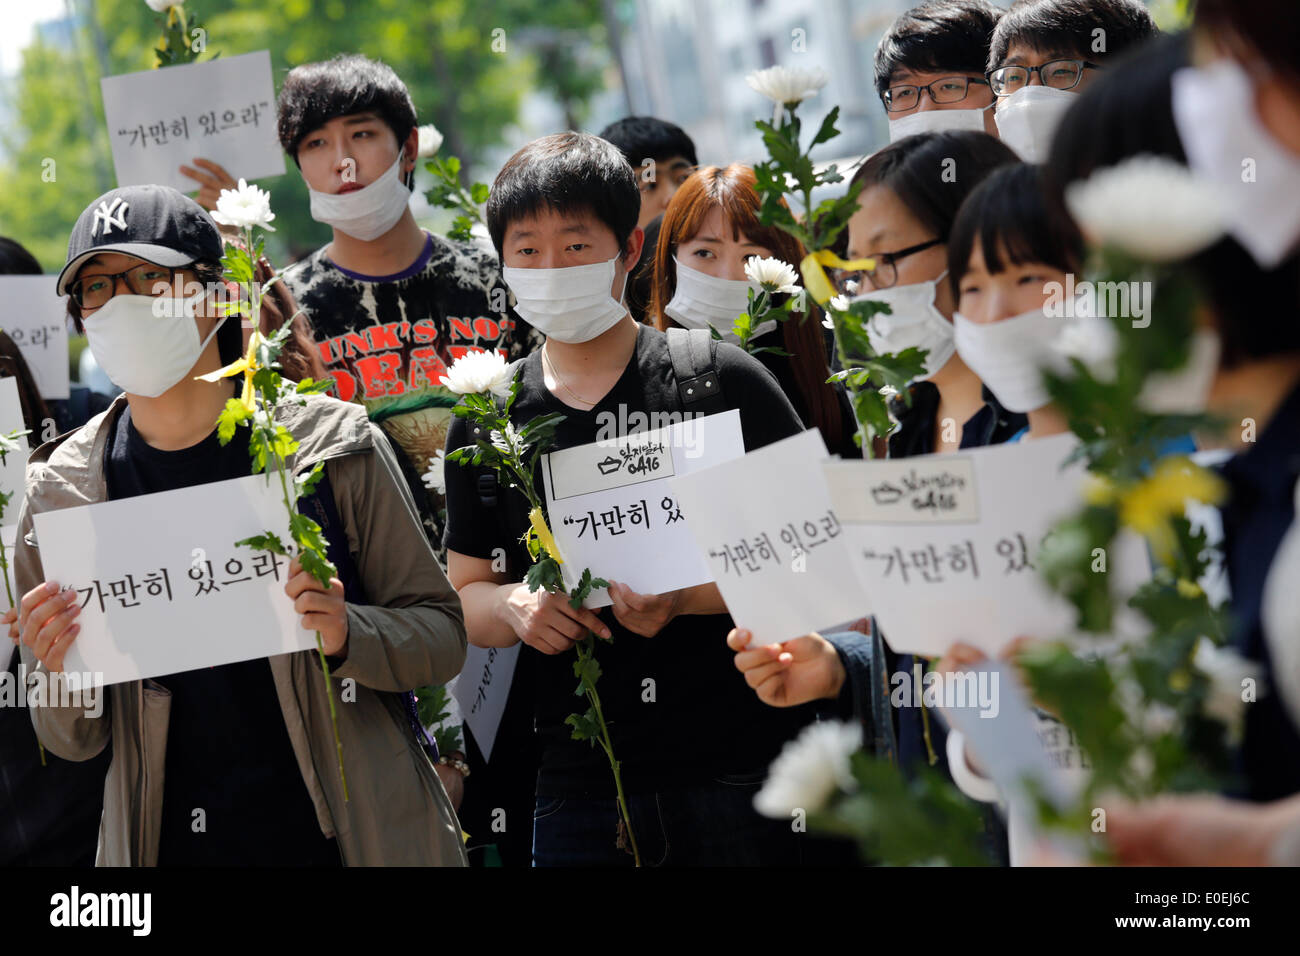 Seoul, South Korea. 10th May 2014. People hold signs and flowers during their 'Stay Still' silent march against what they insist, lax response of President Park Geun-hye's government after the Sewol ferry was sunken in waters off the southwestern island of Jindo on April 16, 2014, on the street, Seoul, South Korea, on Saturday May 10, 2014. Signs read,'Stay still', pasquinading captain of Sewol, who was broadcasting a message for passengers to wait until further notice, when the ferry was sinking, according to local media. - Stock Image